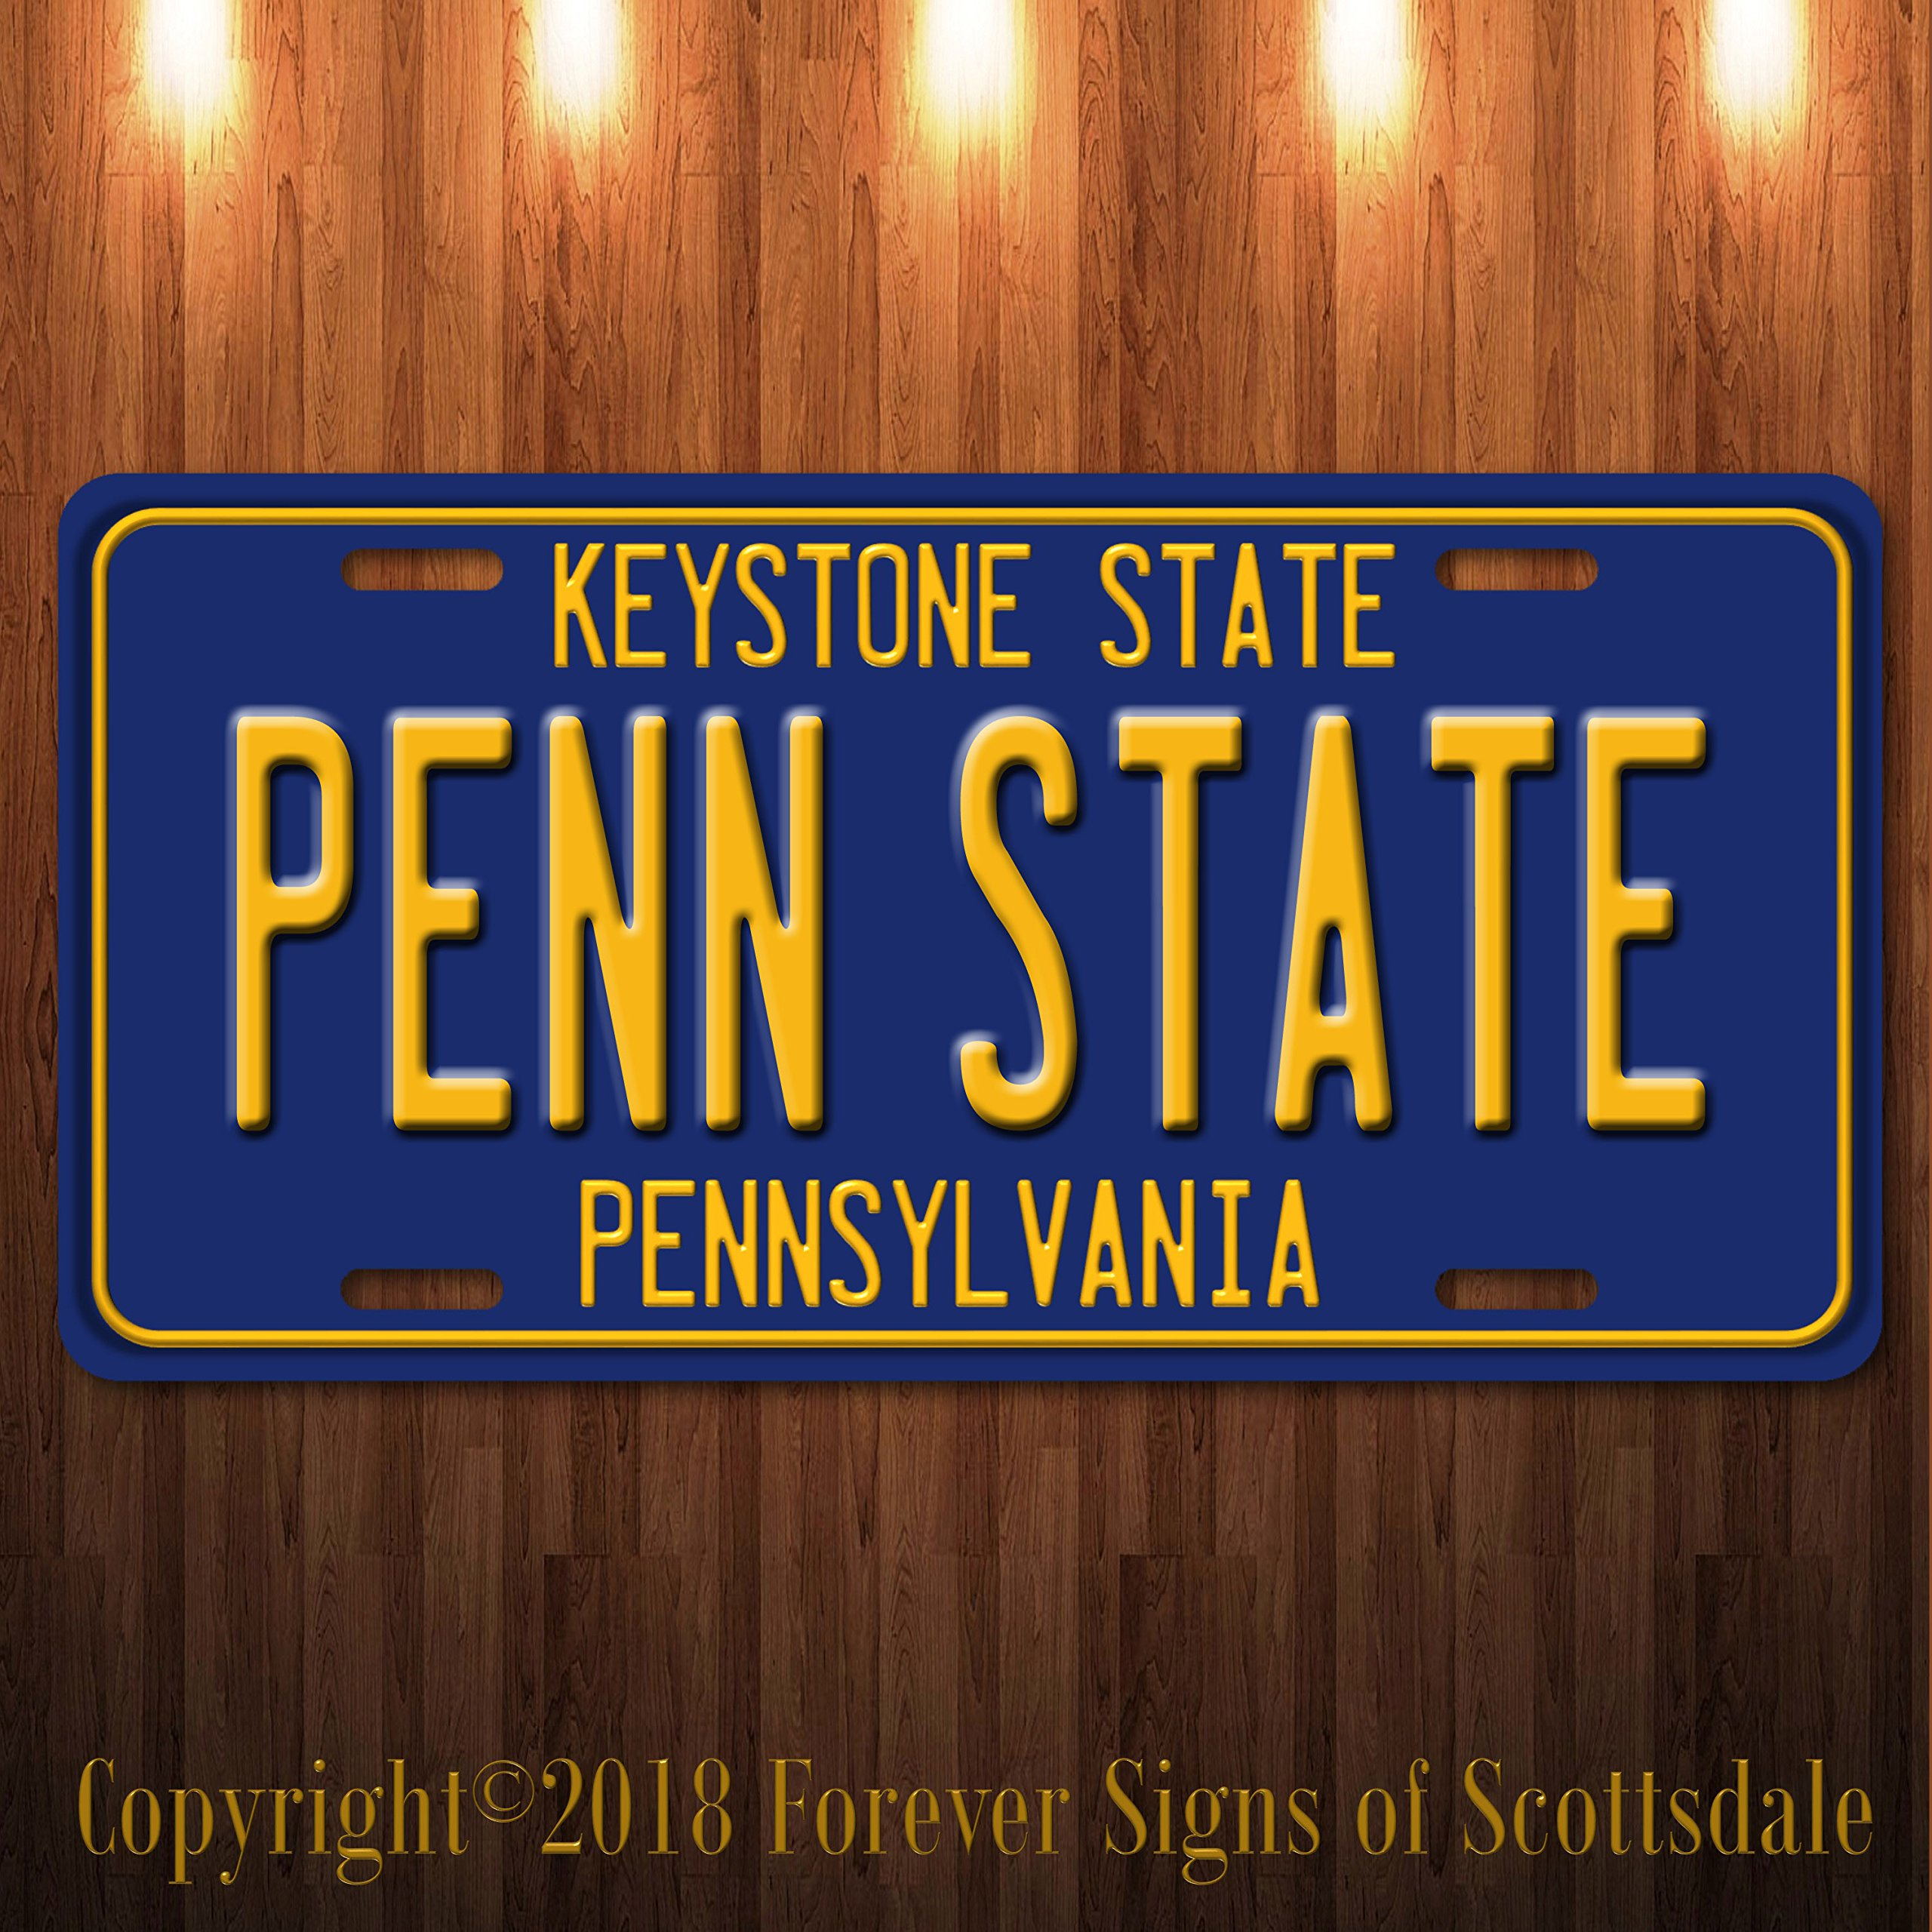 Penn State University College Pennsylvania State Aluminum License Plate Blue